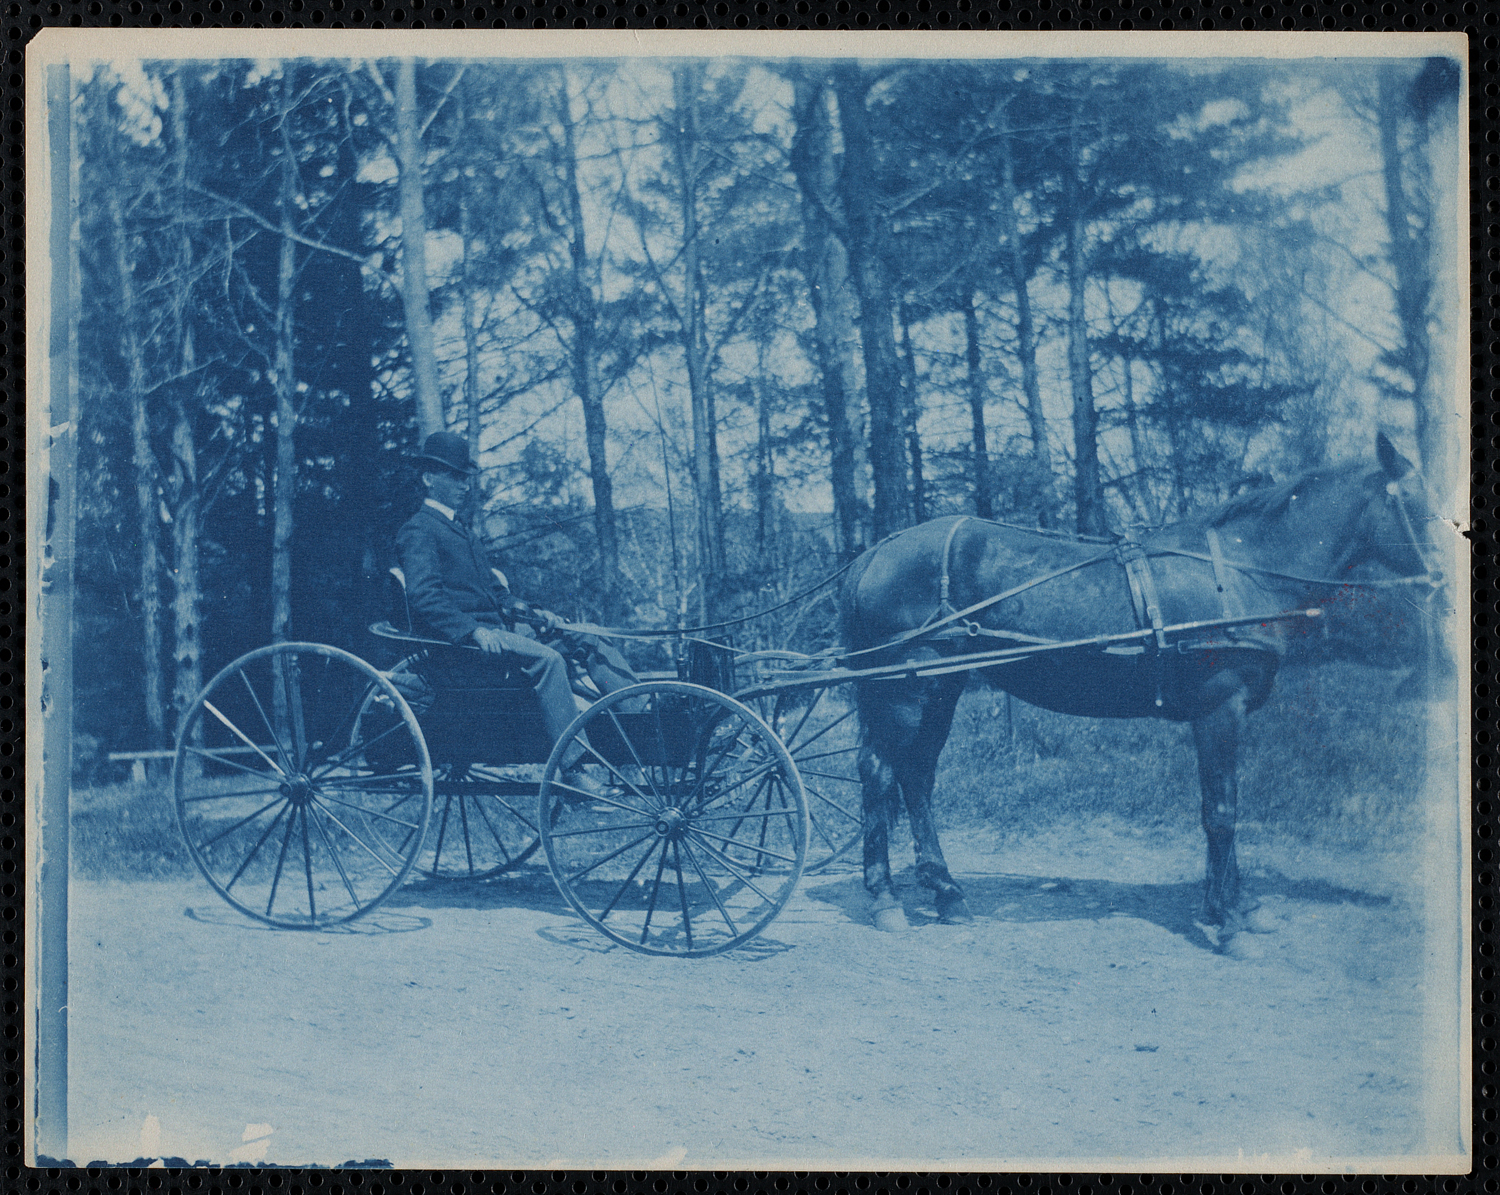 Man seated in a horse-drawn buggy, undated